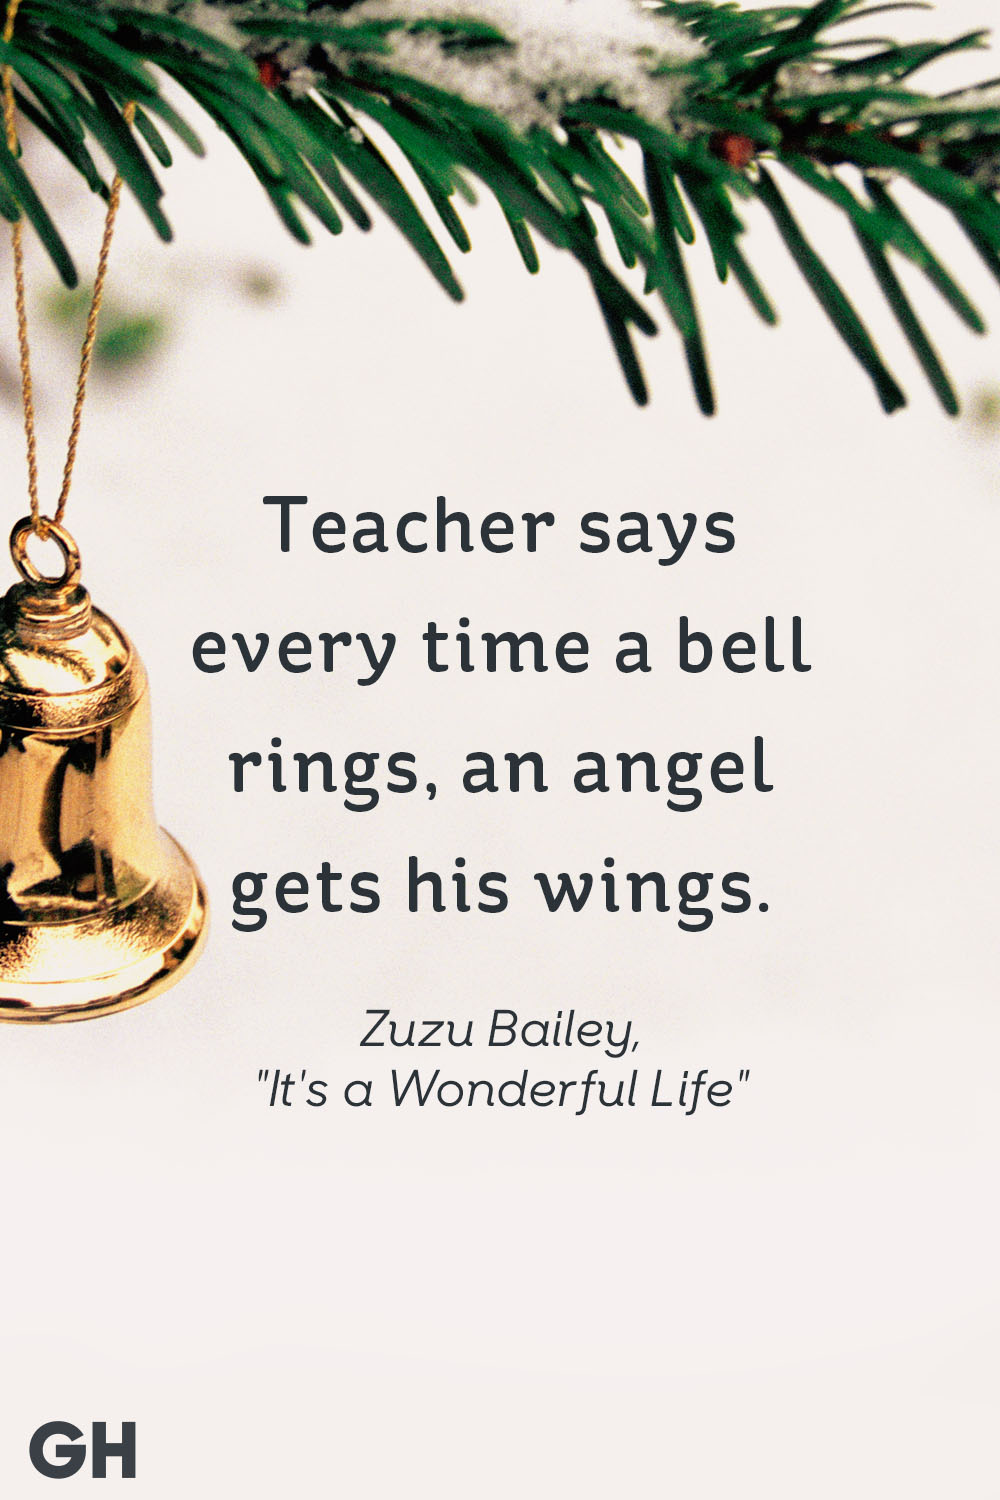 Quotes For Christmas 27 Best Christmas Quotes Of All Time  Festive Holiday Sayings